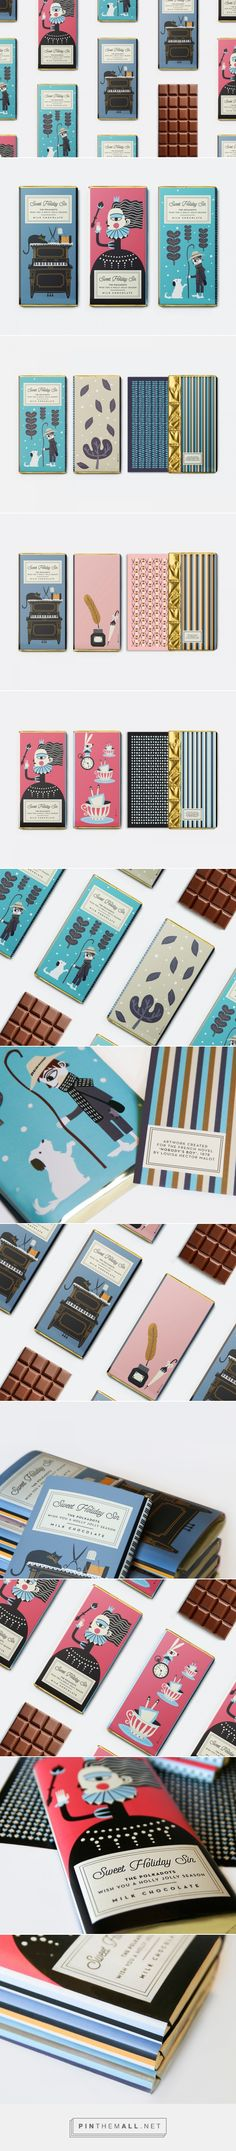 Sweet Holiday Sin chocolates packaging design by polka dot design - http://www.packagingoftheworld.com/2018/02/sweet-holiday-sin.html